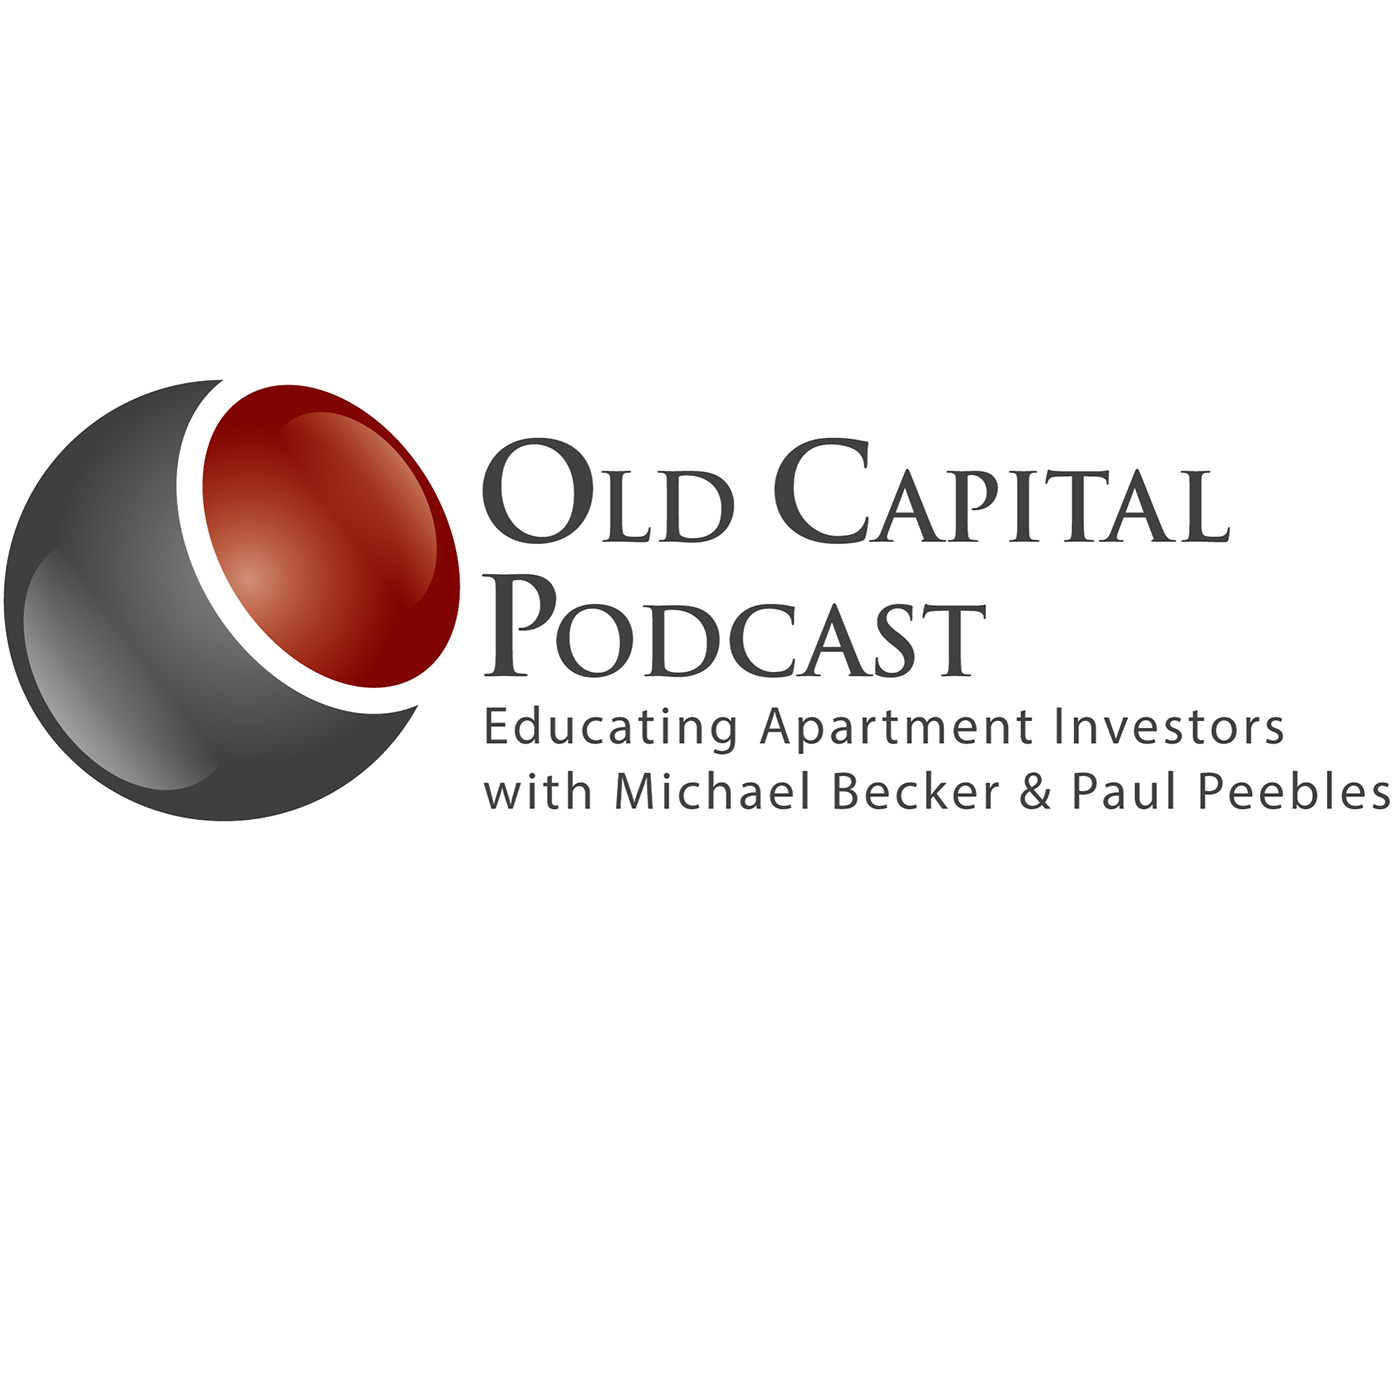 Artwork for ASK MIKE MONDAYS - Michael, have you ADJUSTED the IRR (INTERNAL RATE OF RETURN) in deals you are doing to account for lower cap rates, higher interest rates and lower annual rent increases?